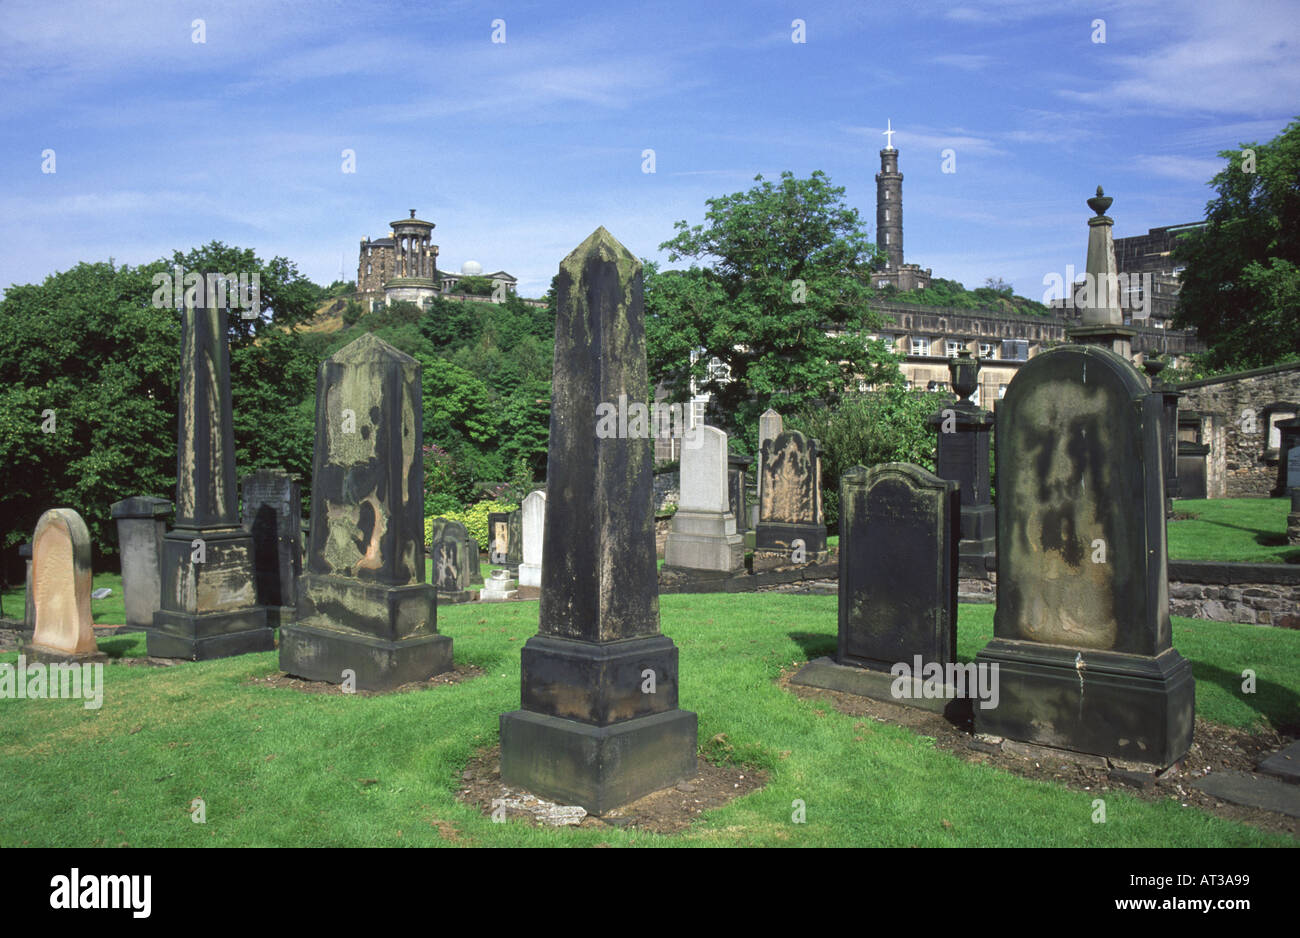 Calton Hill from the Calton Old Burial Ground, Edinburgh, Scotland, UK. Stock Photo